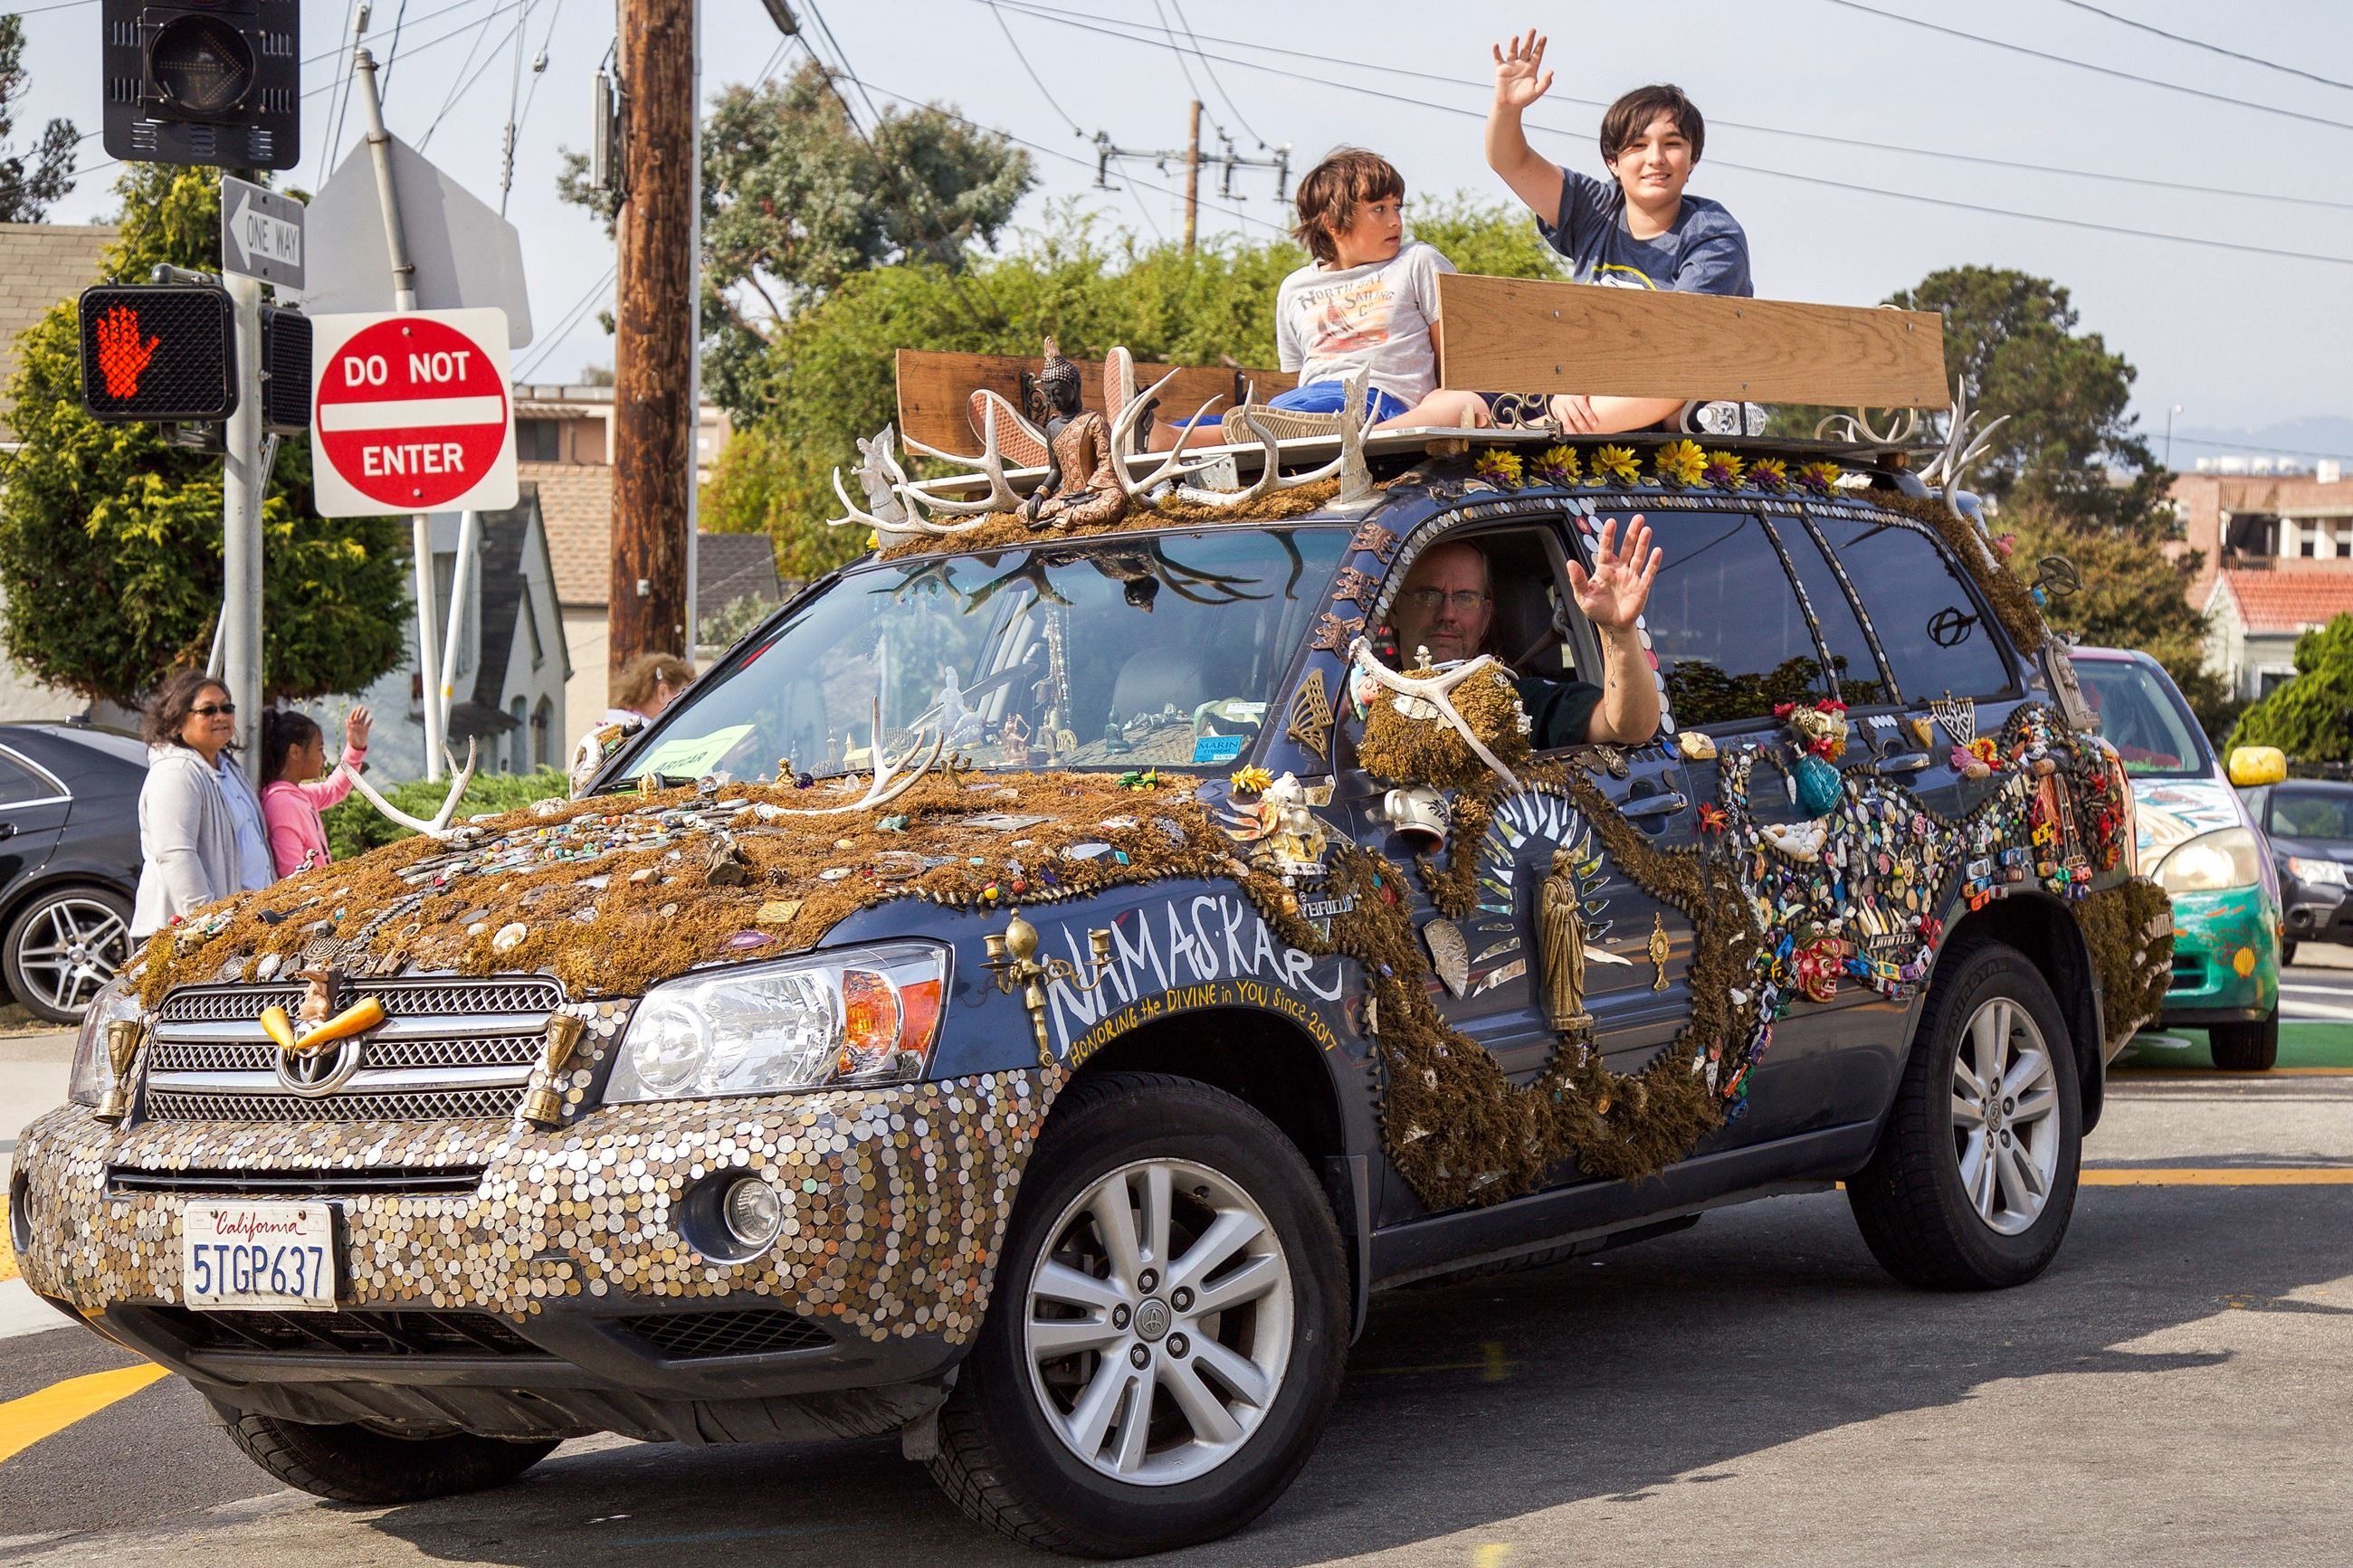 267 art car 2 in Parade - Photo by Marin Stuart